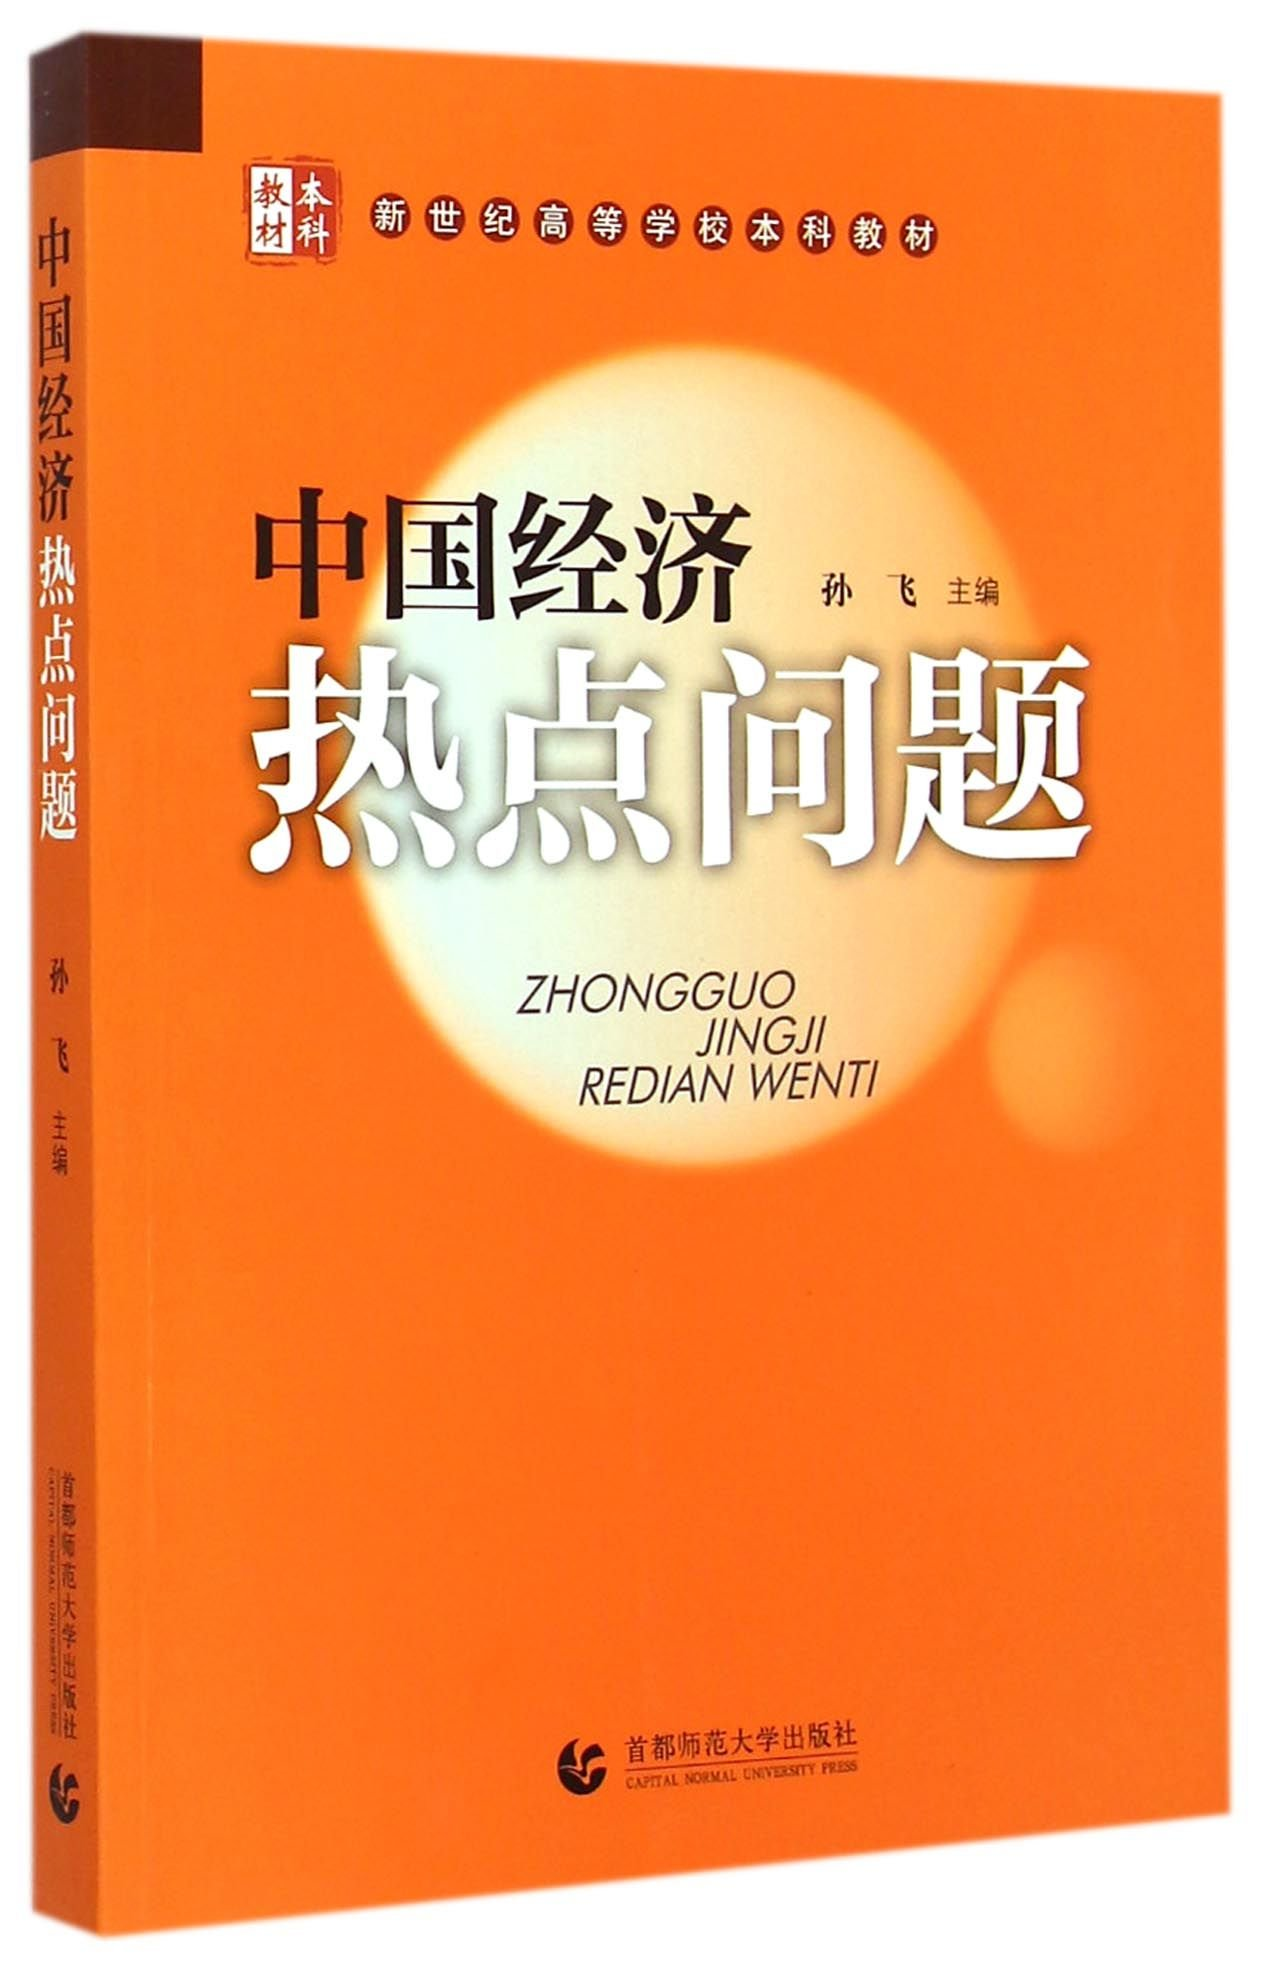 Download Hot Issues About Chinese Economy (Chinese Edition) PDF